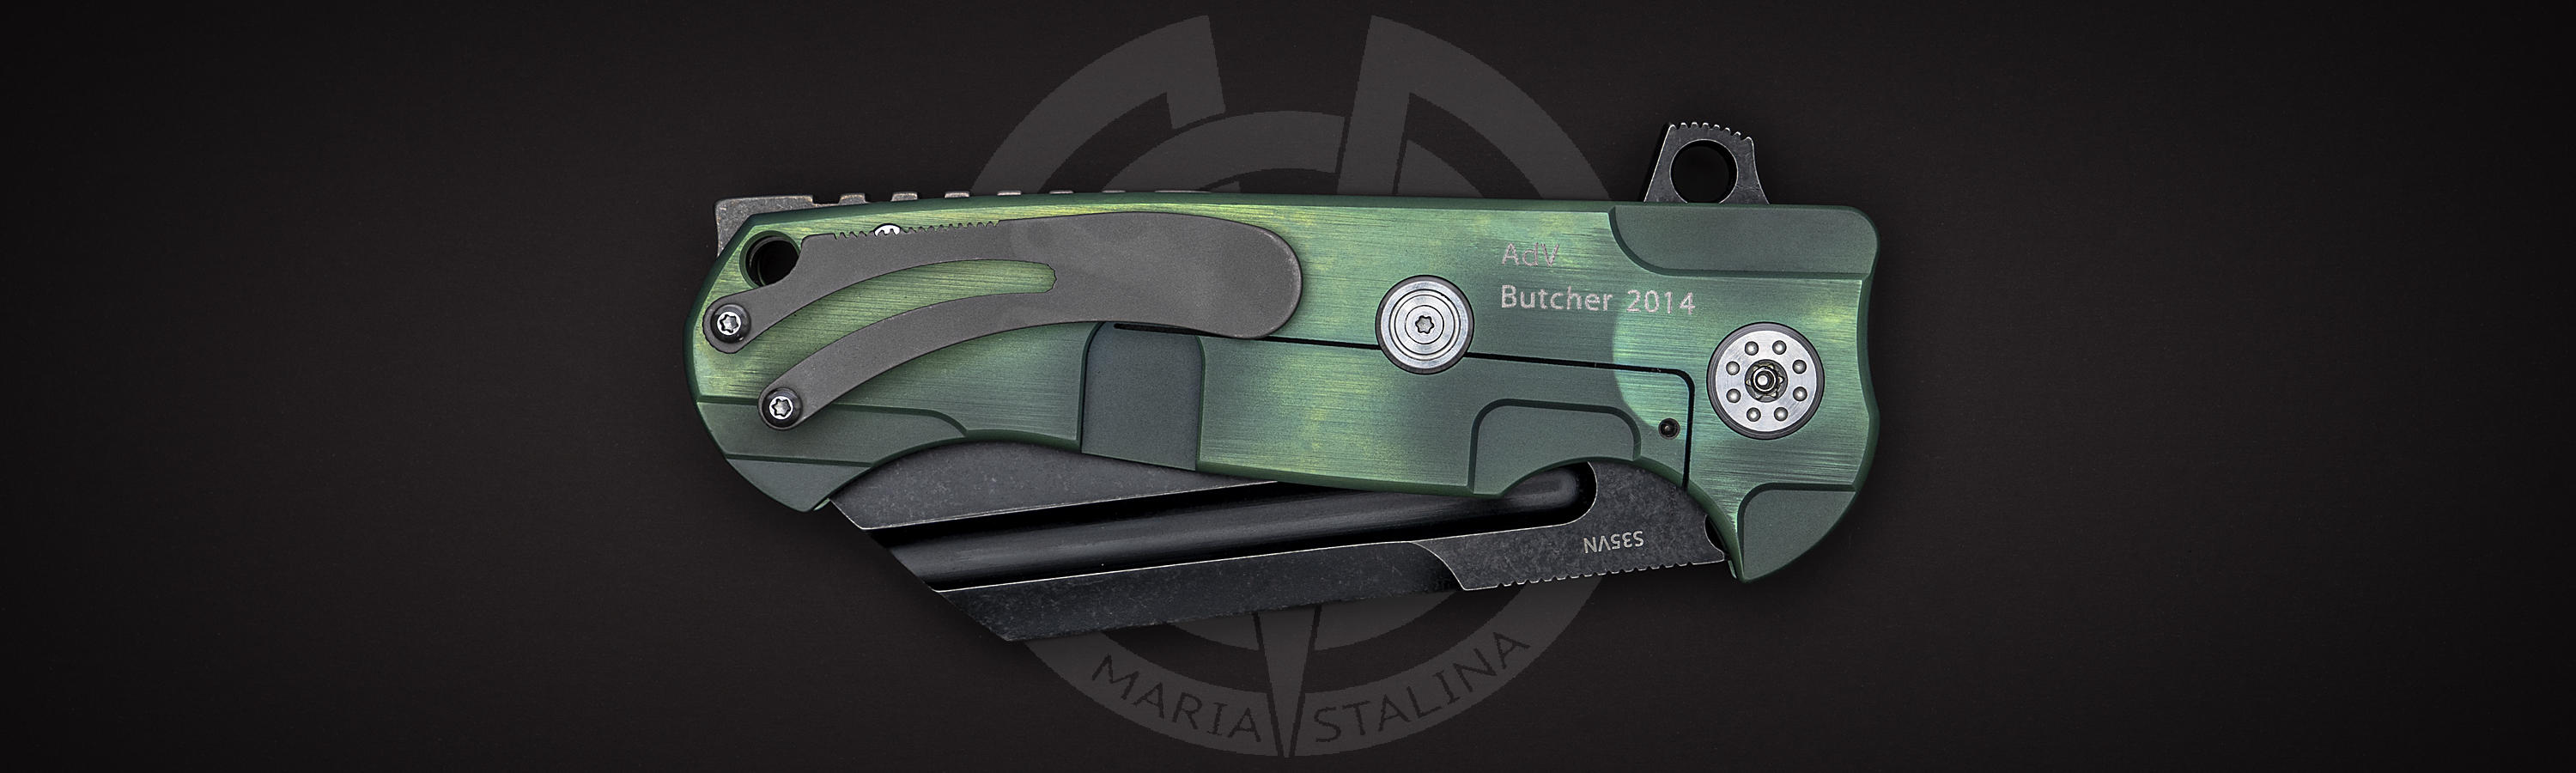 Anodized titanium Butcher 2014 Green/Black